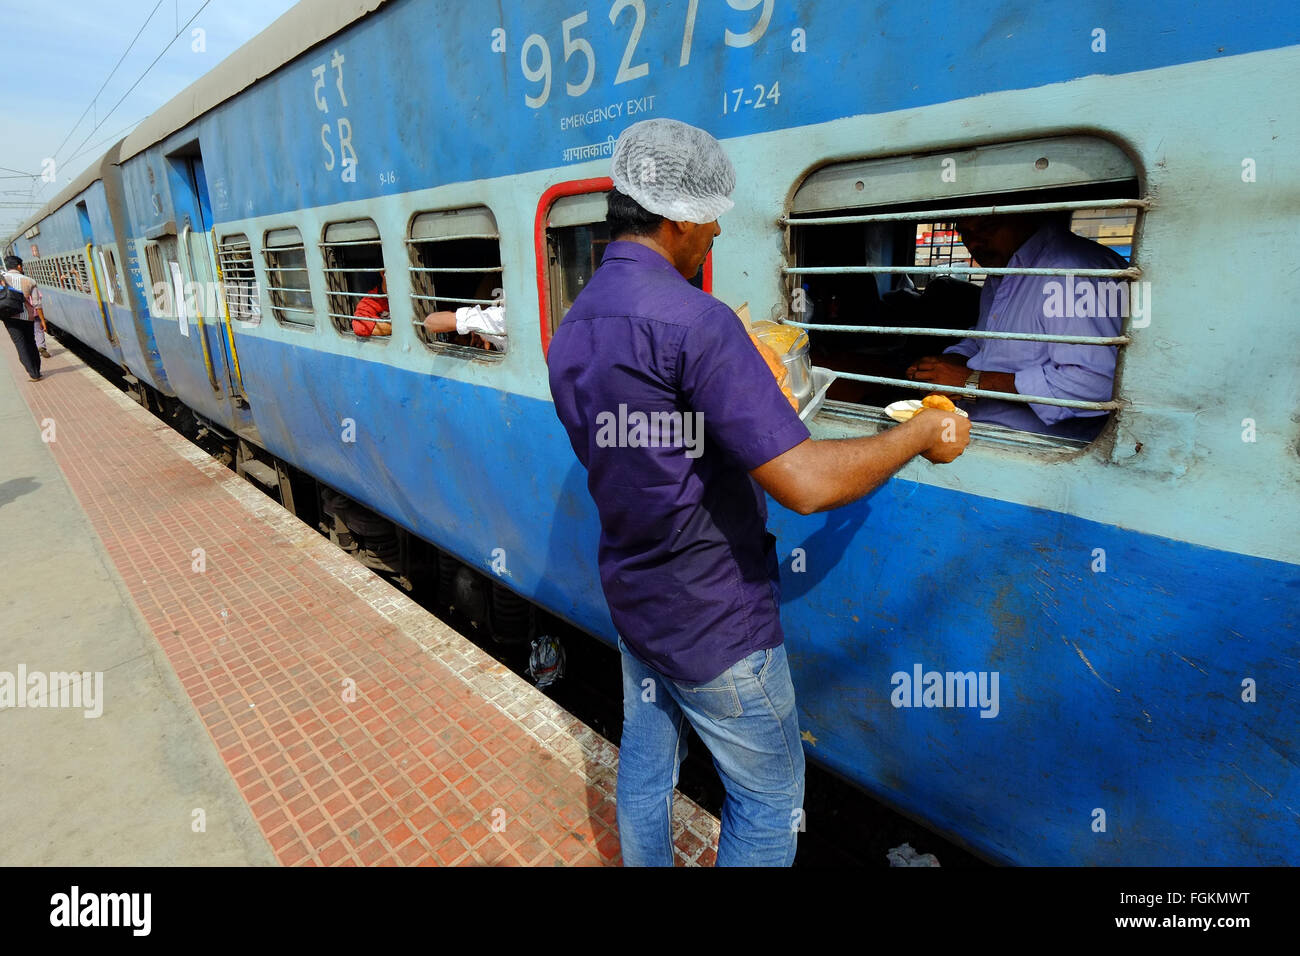 A food vendor selling food through the carriage window at a station in Southern India - Stock Image